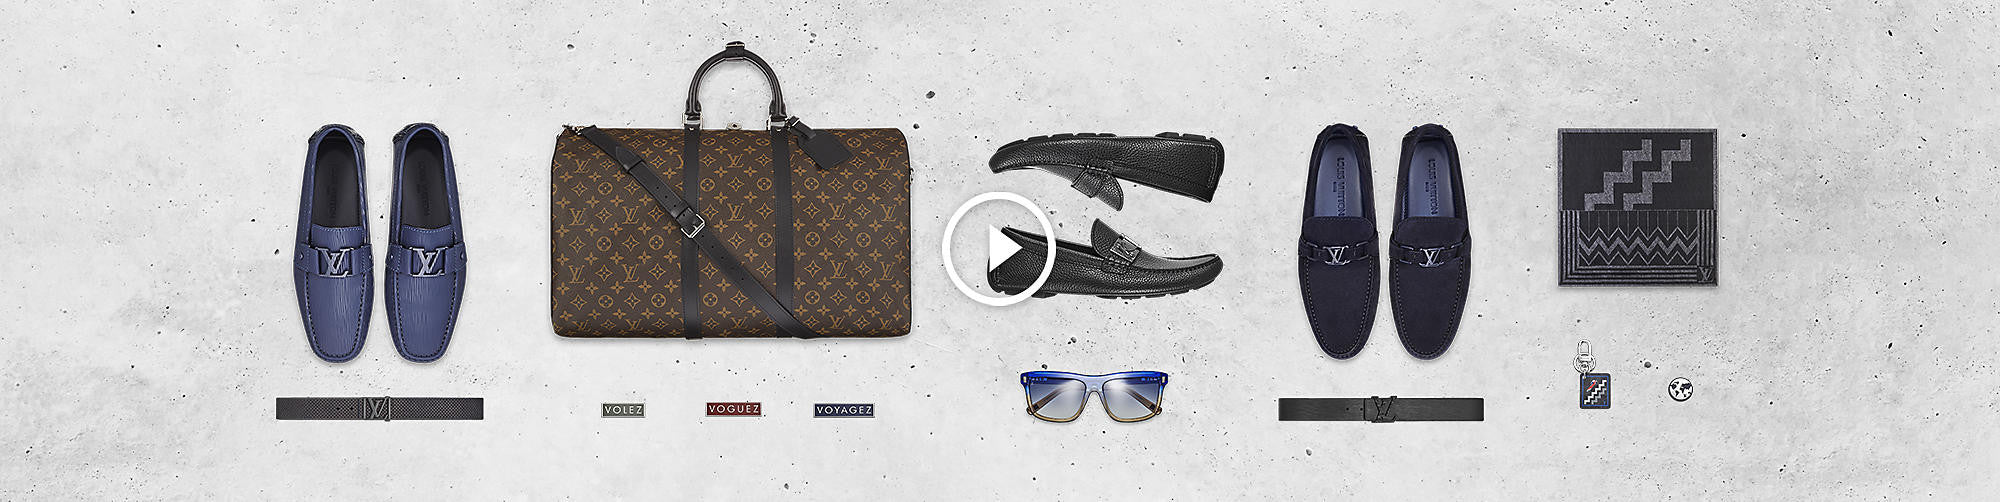 Louis-Vuitton-Mens-Shoes